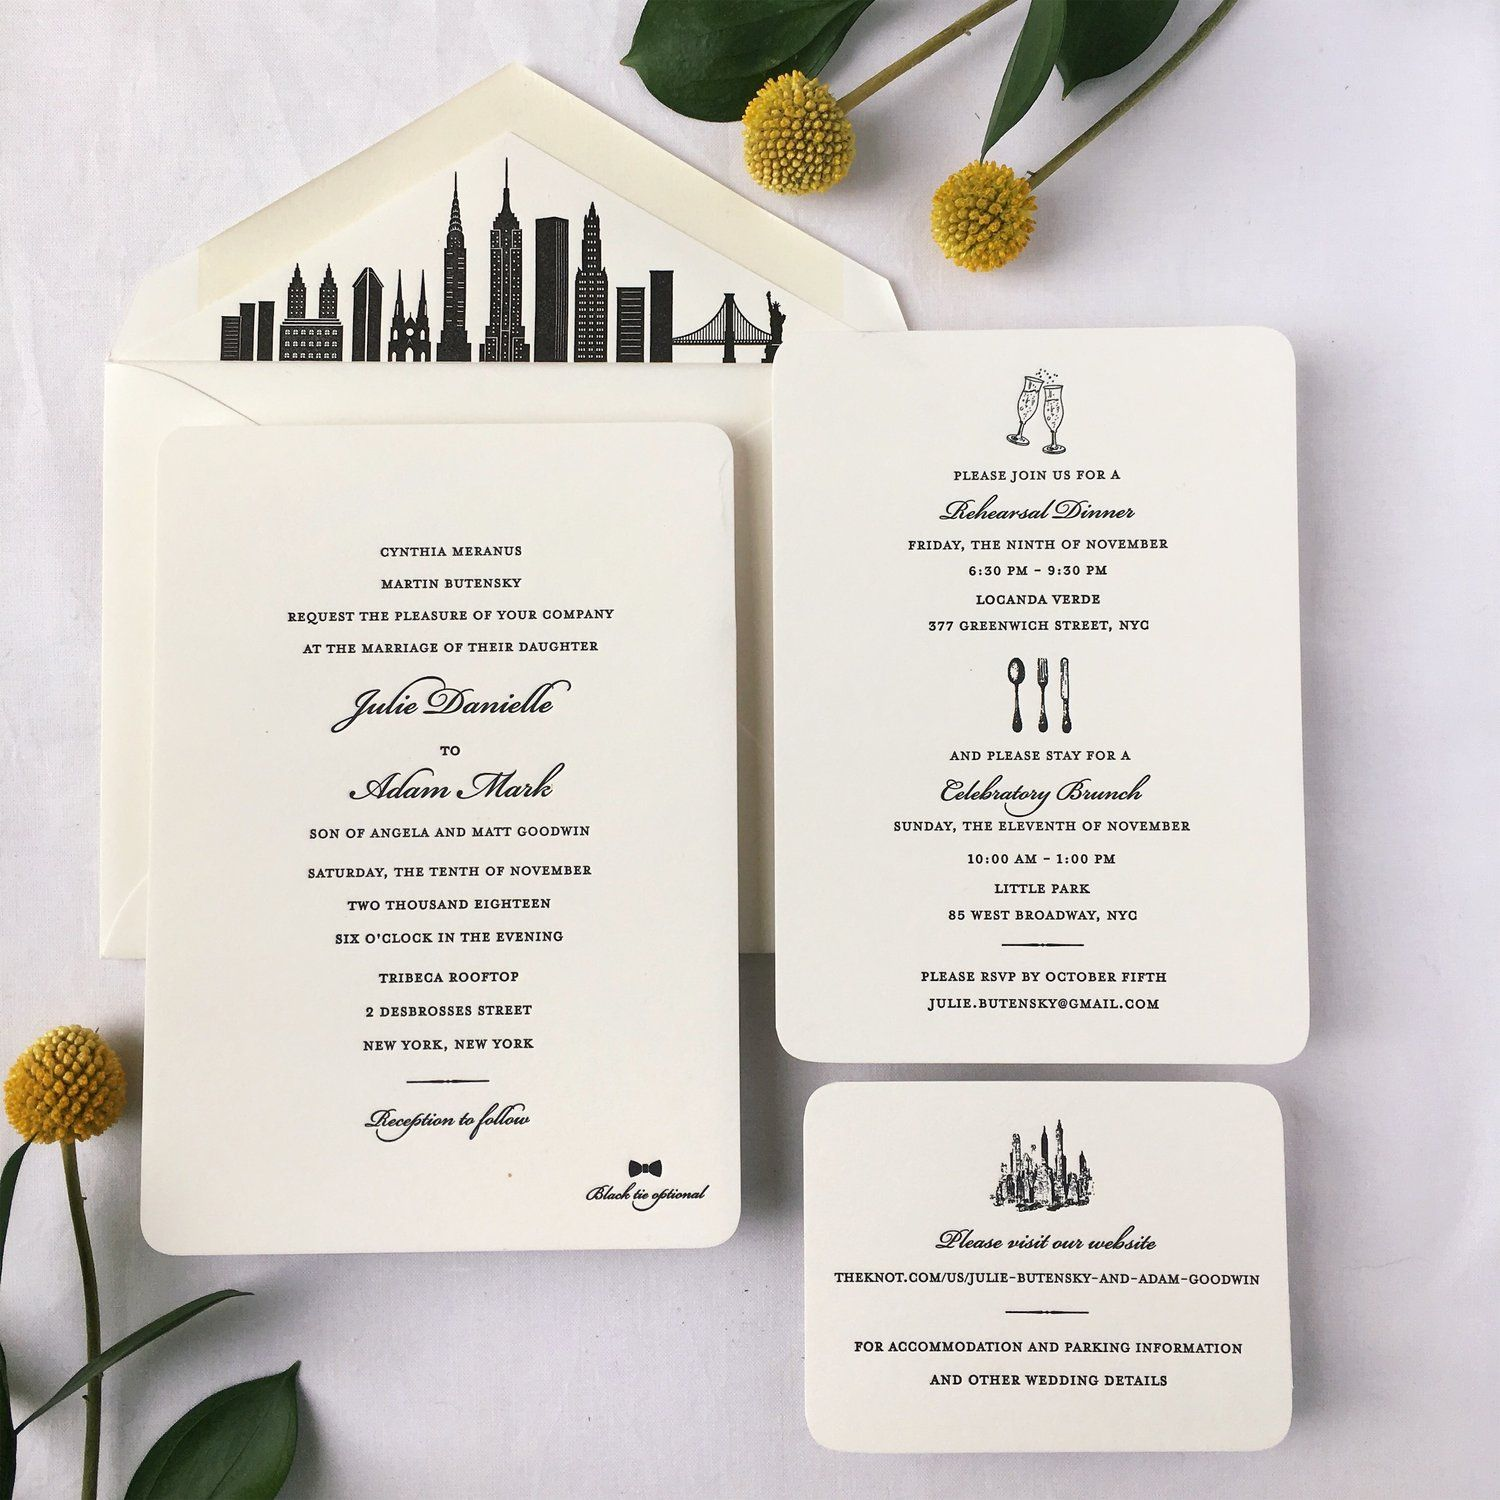 Nyc Themed Wedding Invitations Printed In Black Ink For A City Wedding New Timeless Wedding Invitations City Wedding Invitations Printing Wedding Invitations